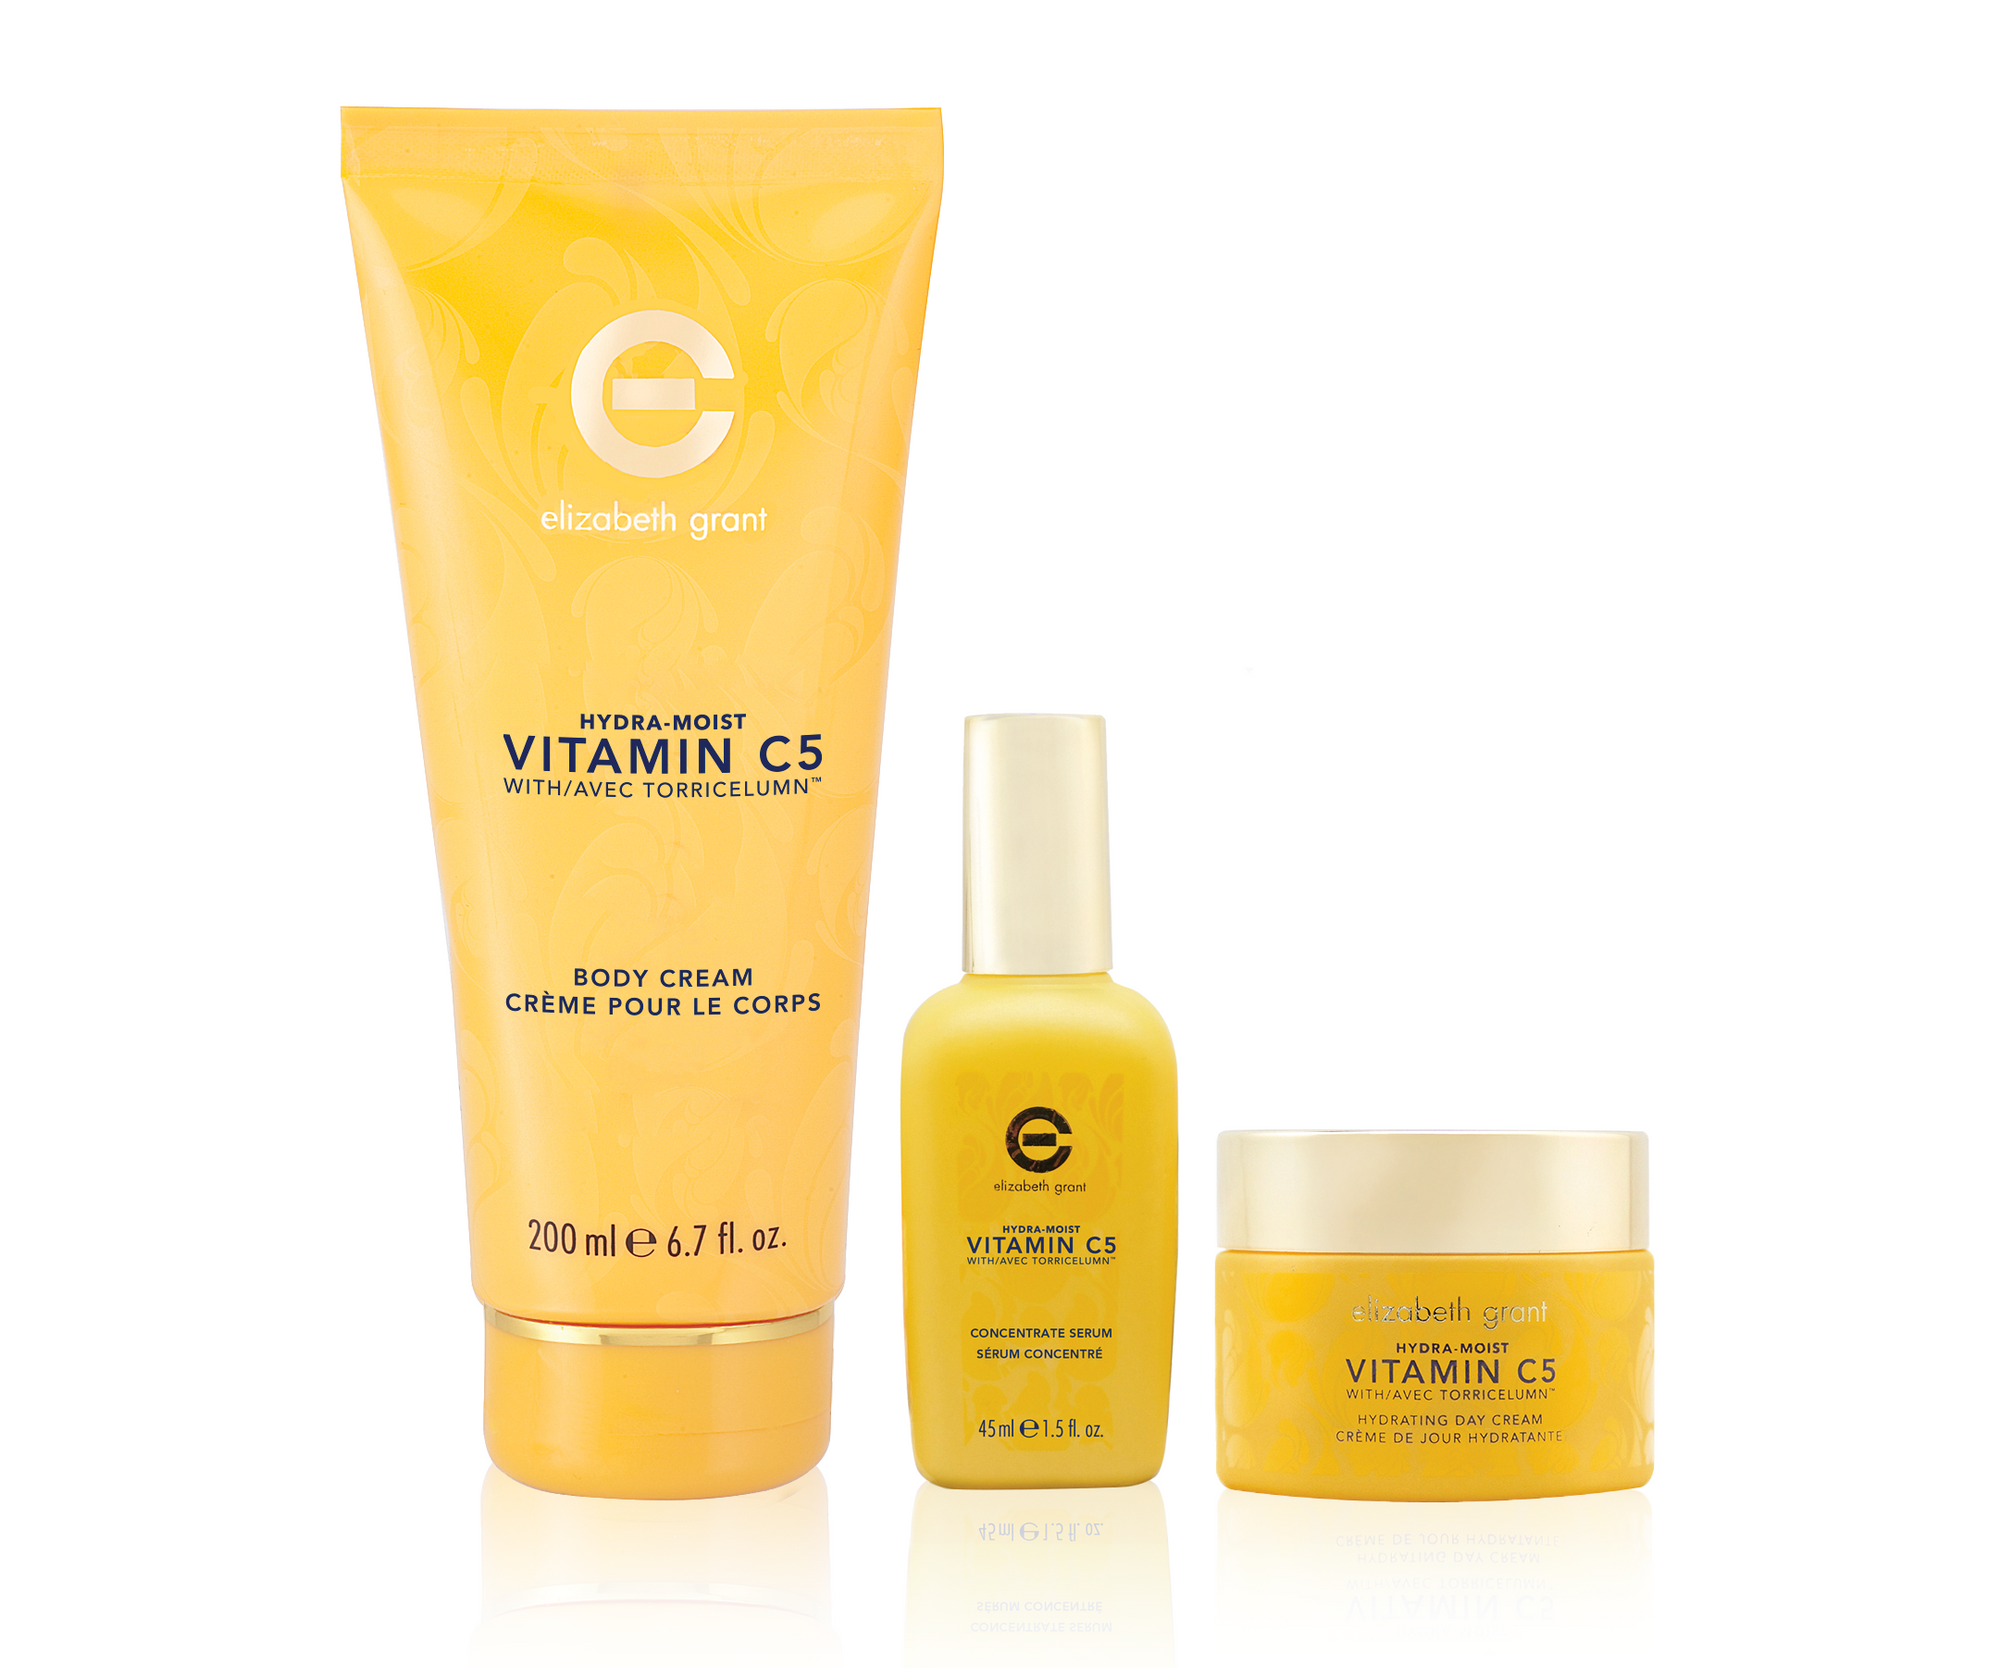 ELIZABETH GRANT Vitamin C5 Hydra-Moist KIT - Vitamin C5 All-Day Cream 50ml, Face Serum 45ml & Body Cream 200ml